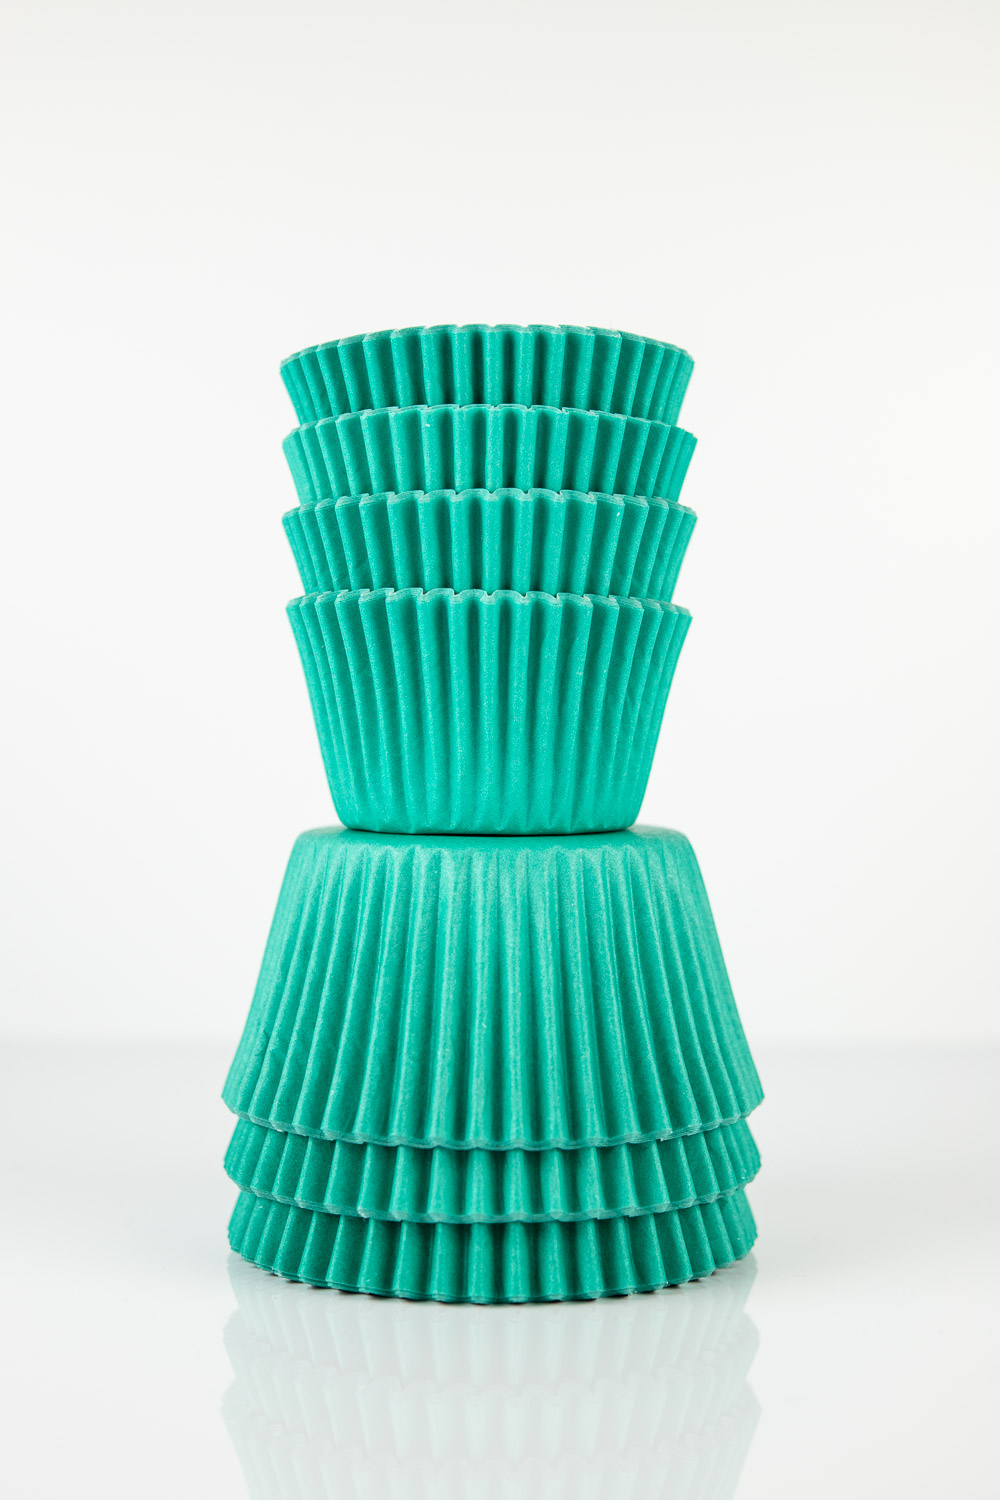 larger size midi cupcake liners stacked on top of standard size baking cups